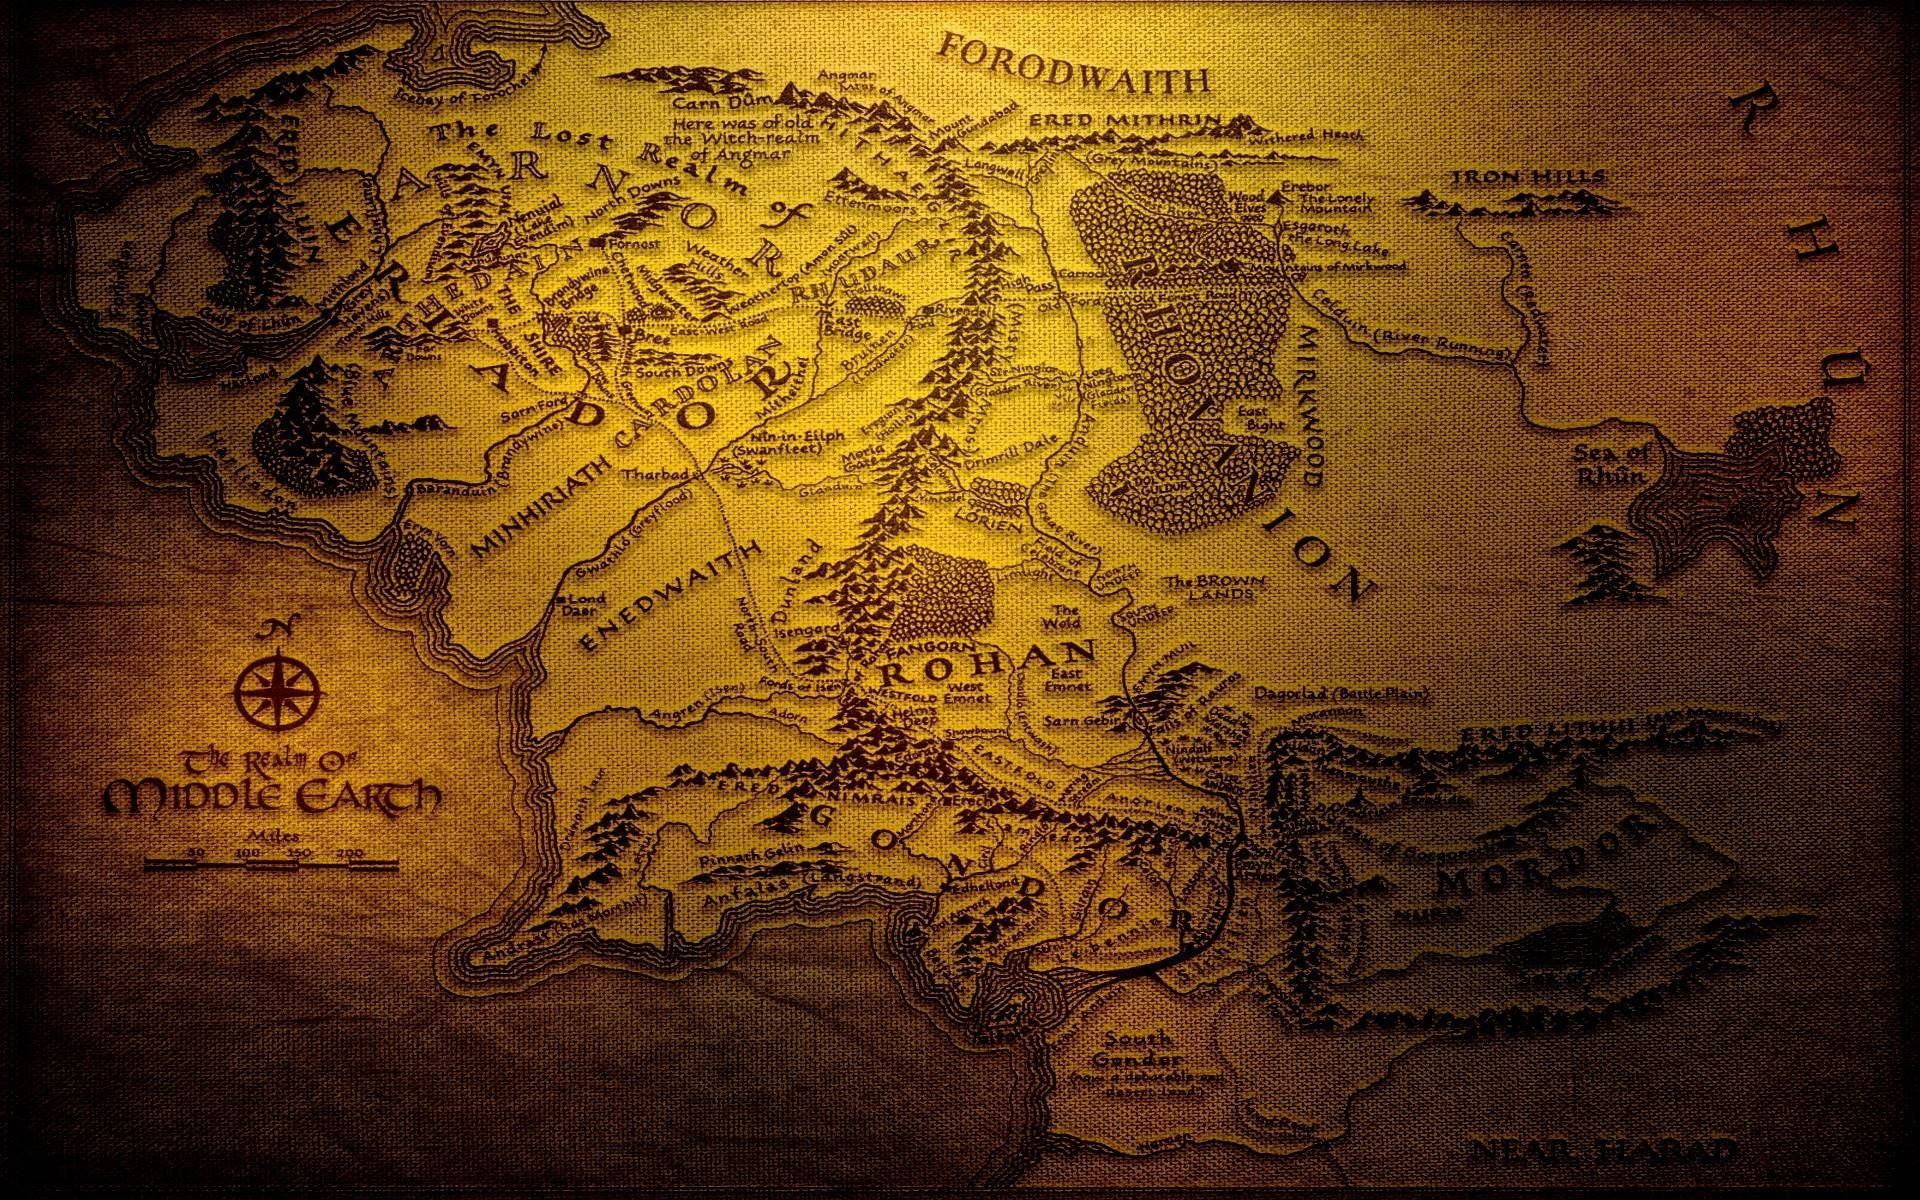 multicolor the lord of the rings maps mordor jrr tolkien gondor isengard rohan rivendell wallpaper